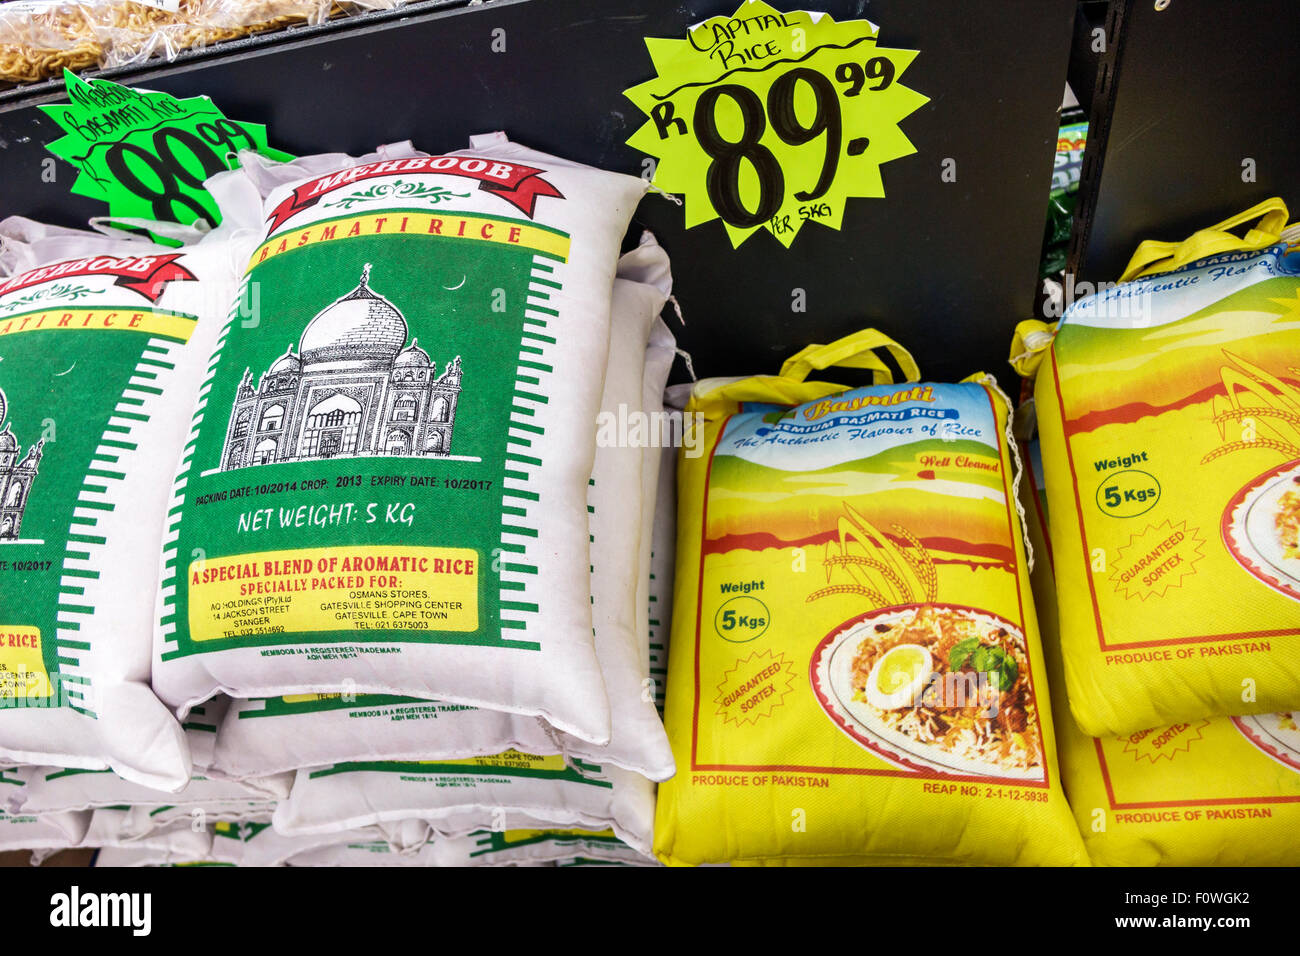 Cape Town South Africa African Woodstock Victoria Road Balmoral Grocery Store supermarket sale display food sacks Stock Photo